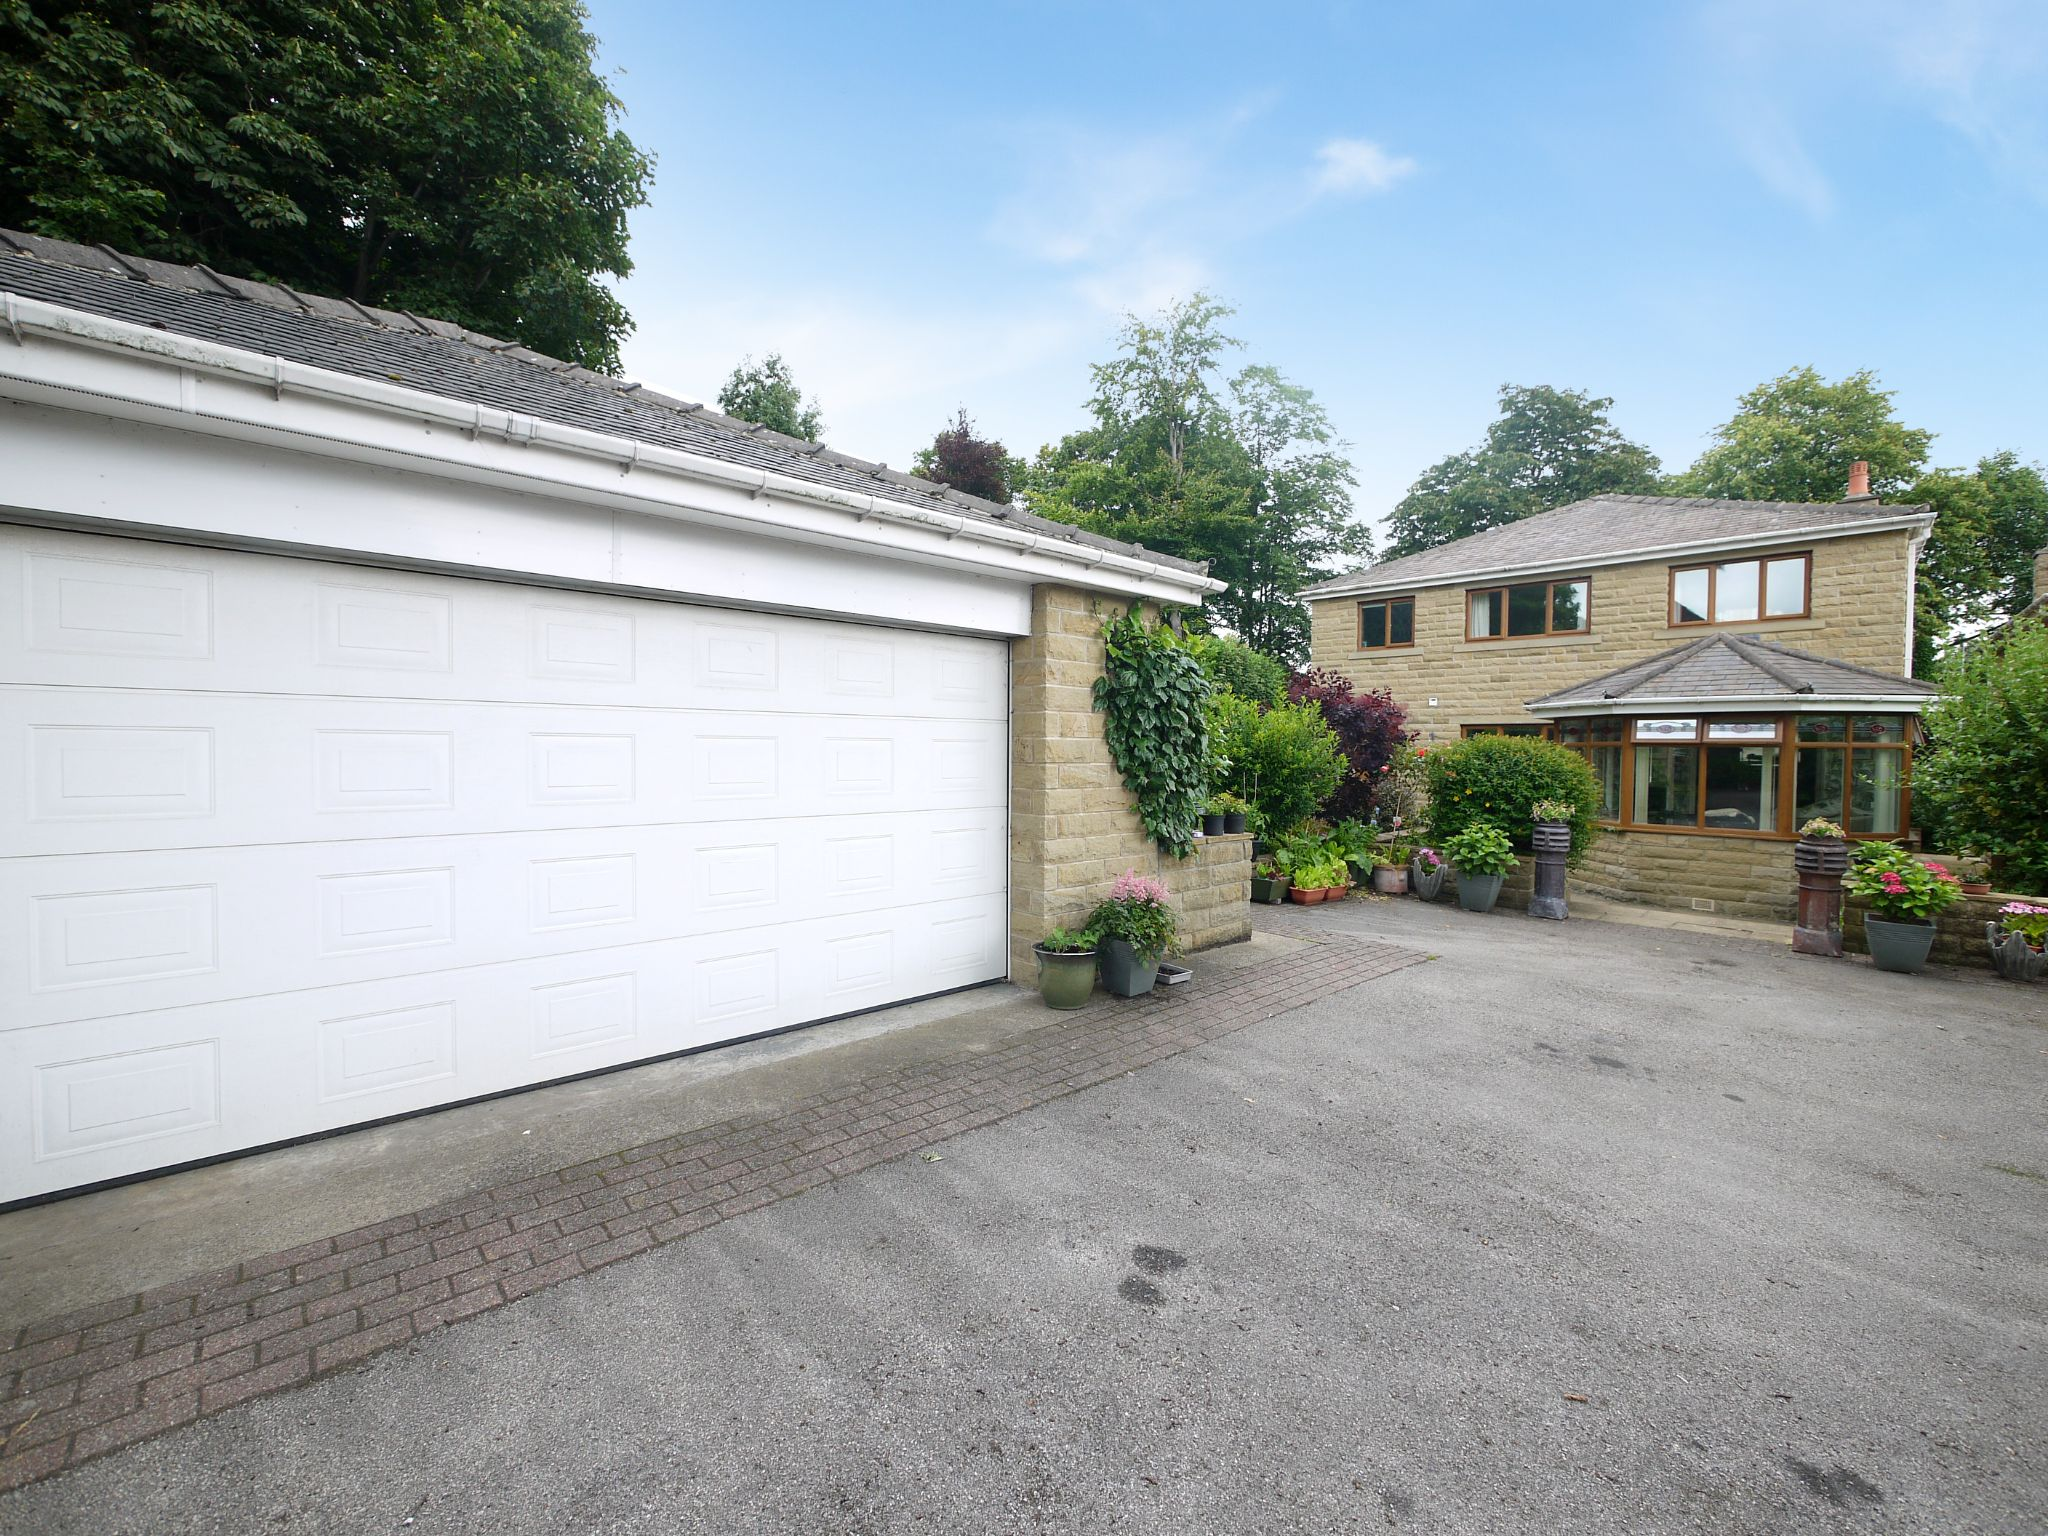 4 bedroom detached house For Sale in Brighouse - Garage.